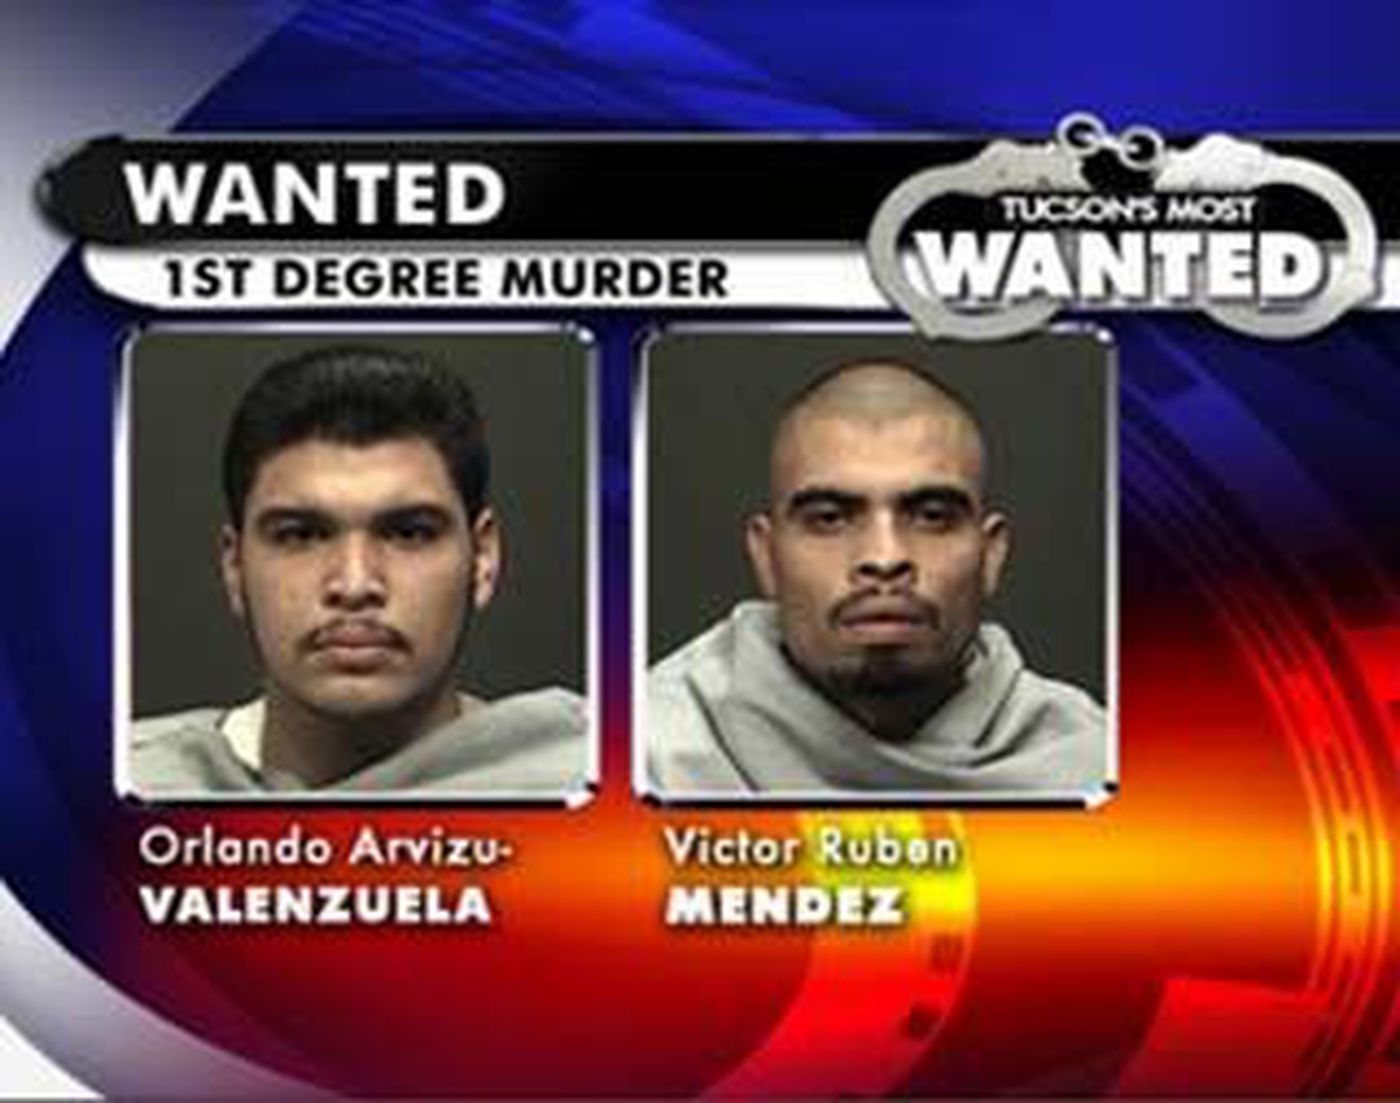 Tucson's Most Wanted: Murder Suspects